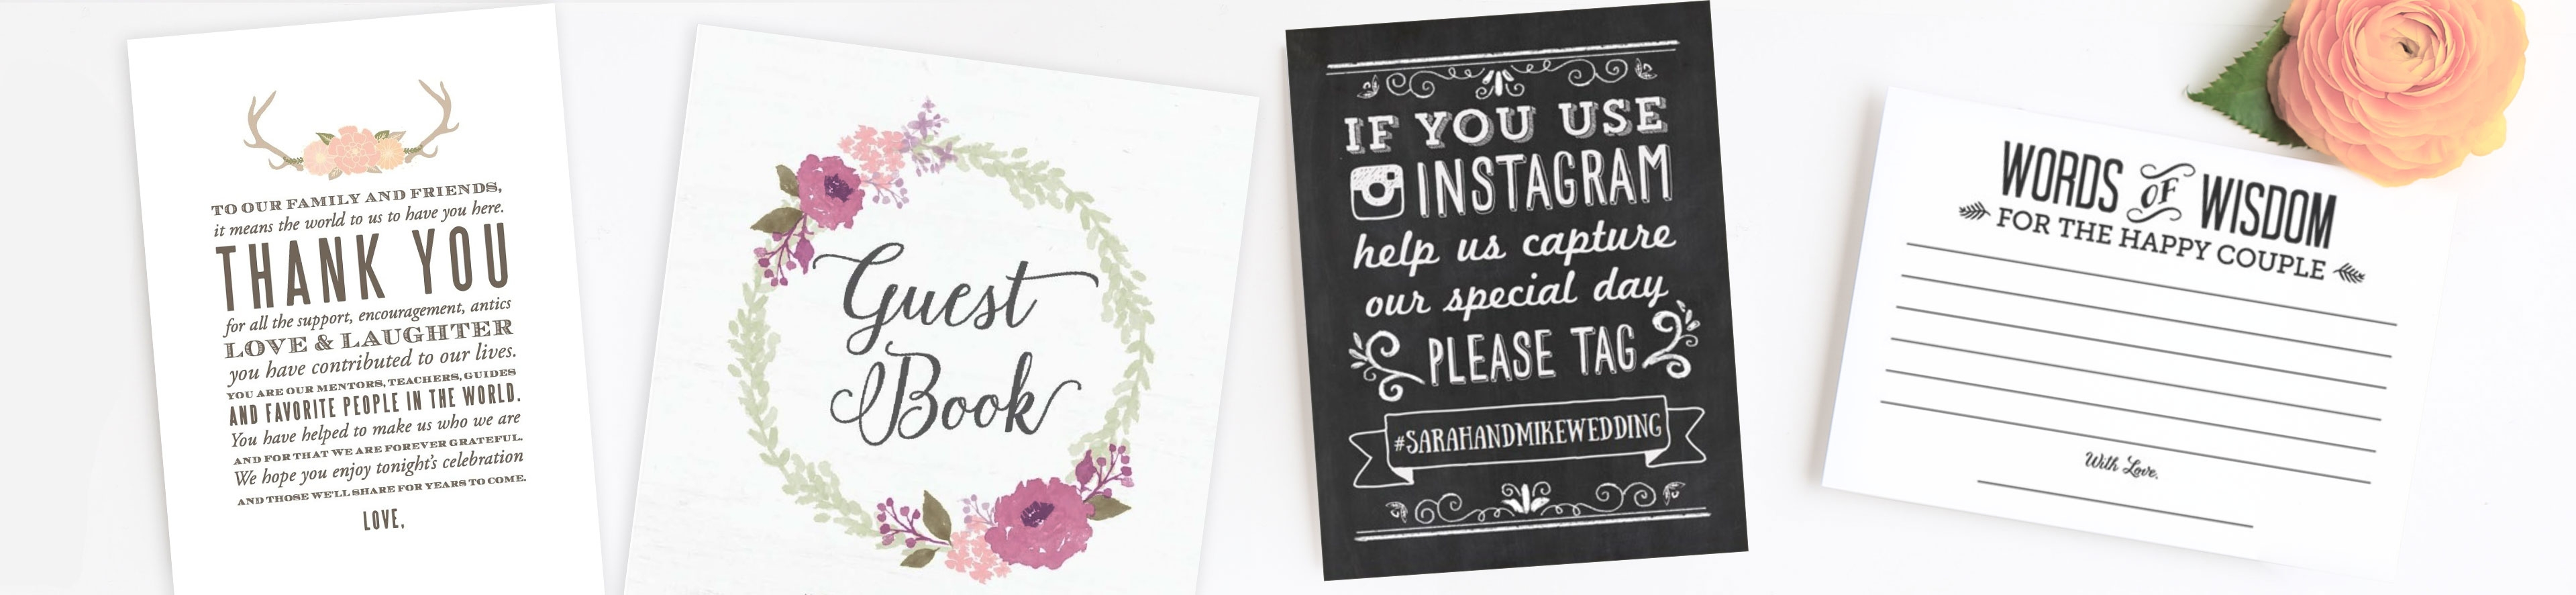 photo relating to Free Printable Graduation Advice Cards identify Wedding day Printables and Absolutely free Wedding day Templates Very simple Invite